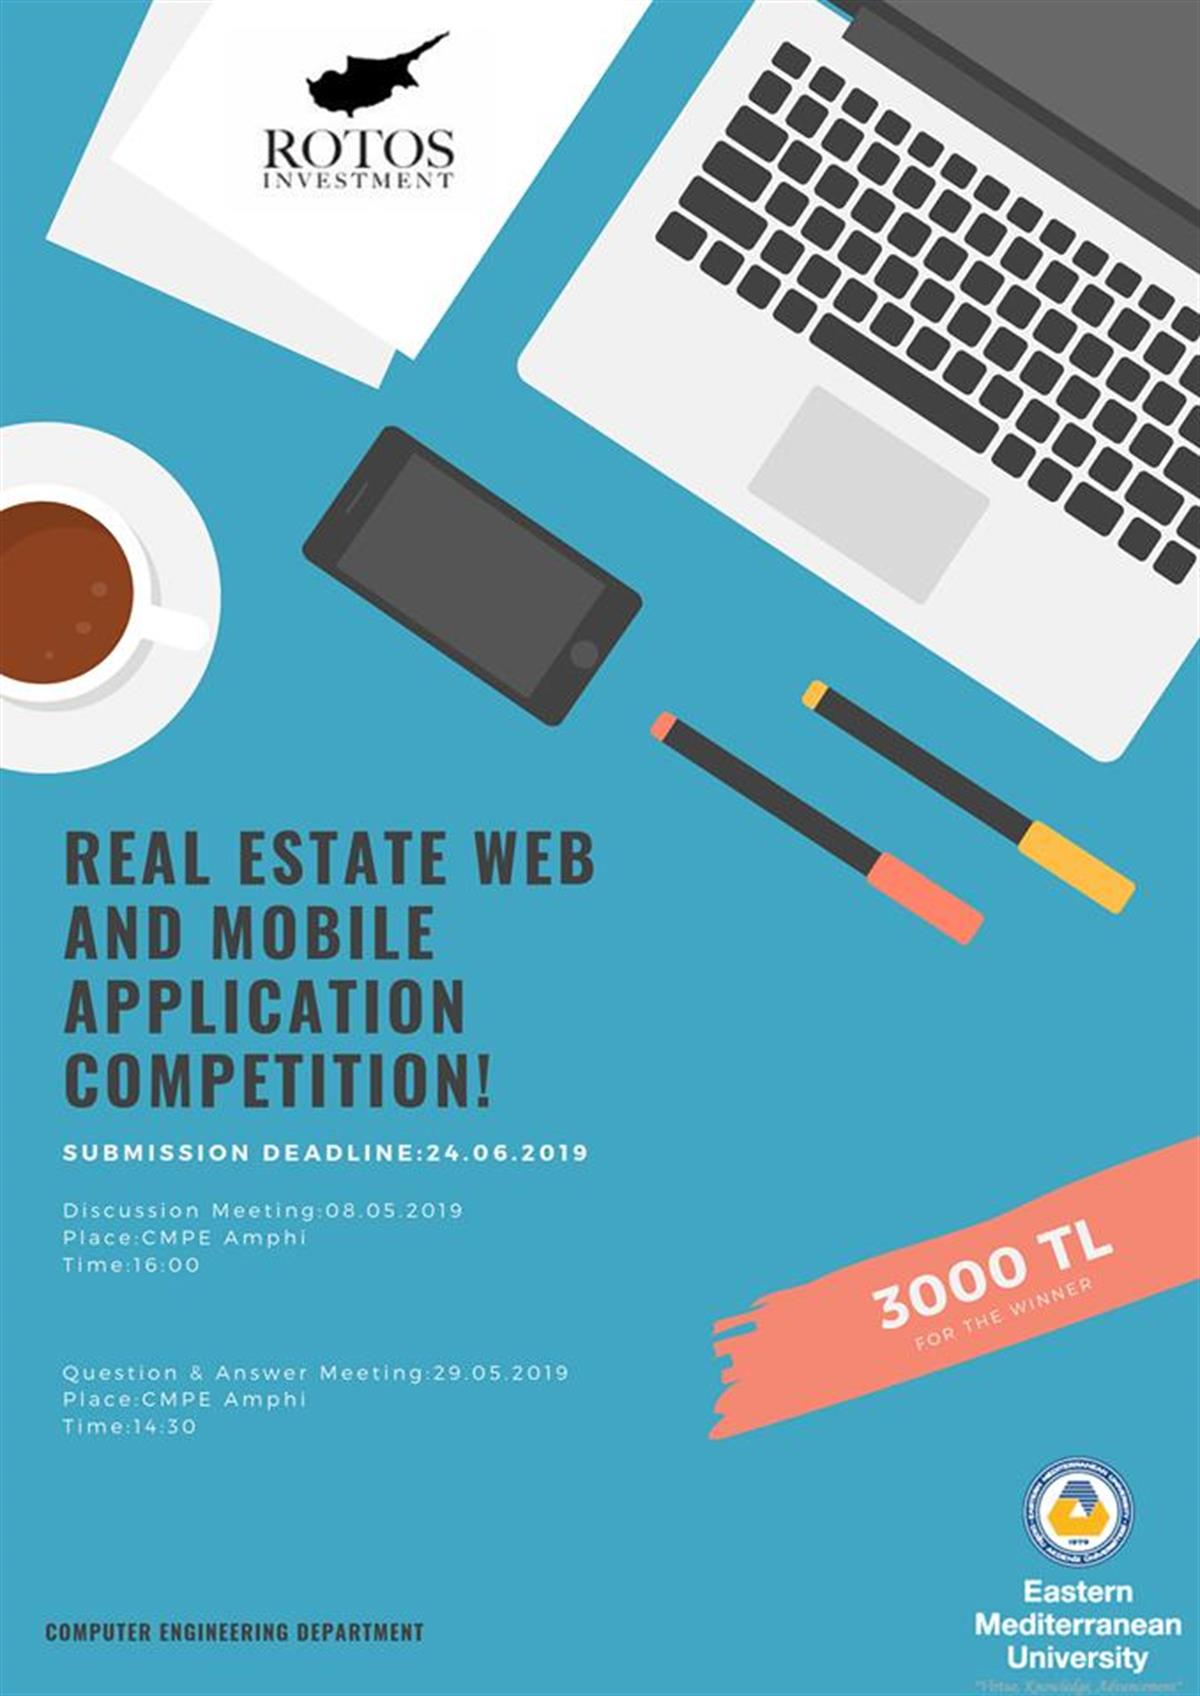 Real Estate Web and Mobile Application Competition ! Date:29.05.2019 Time:16:00 Place: Amphi CMPE